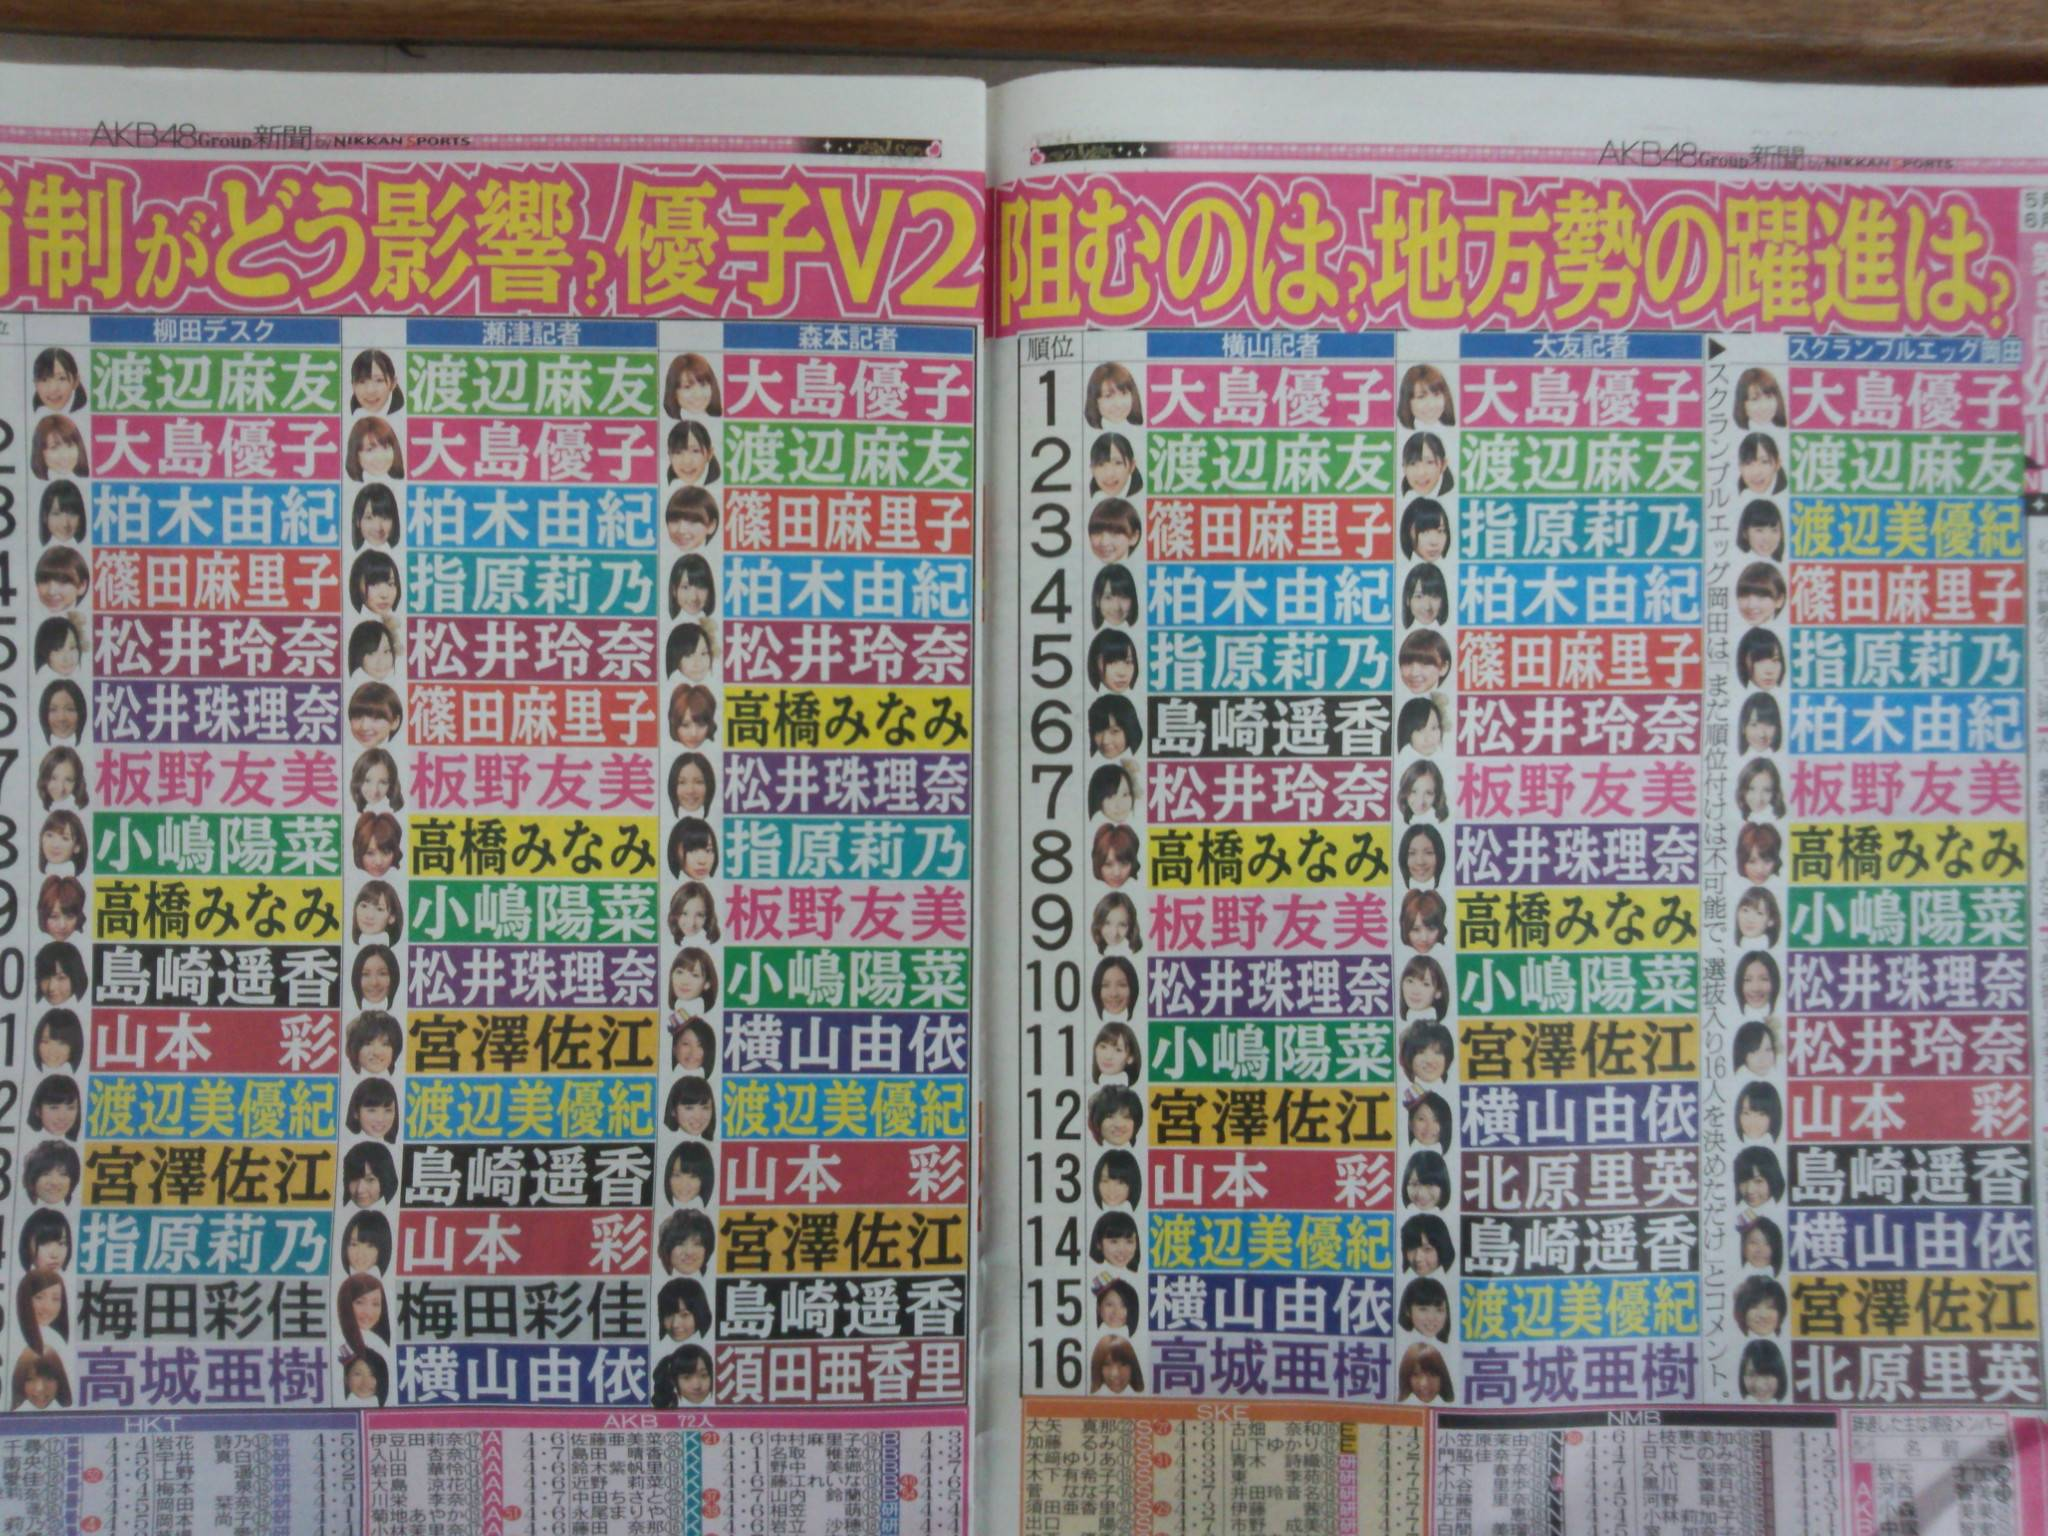 akb48 wrapup election